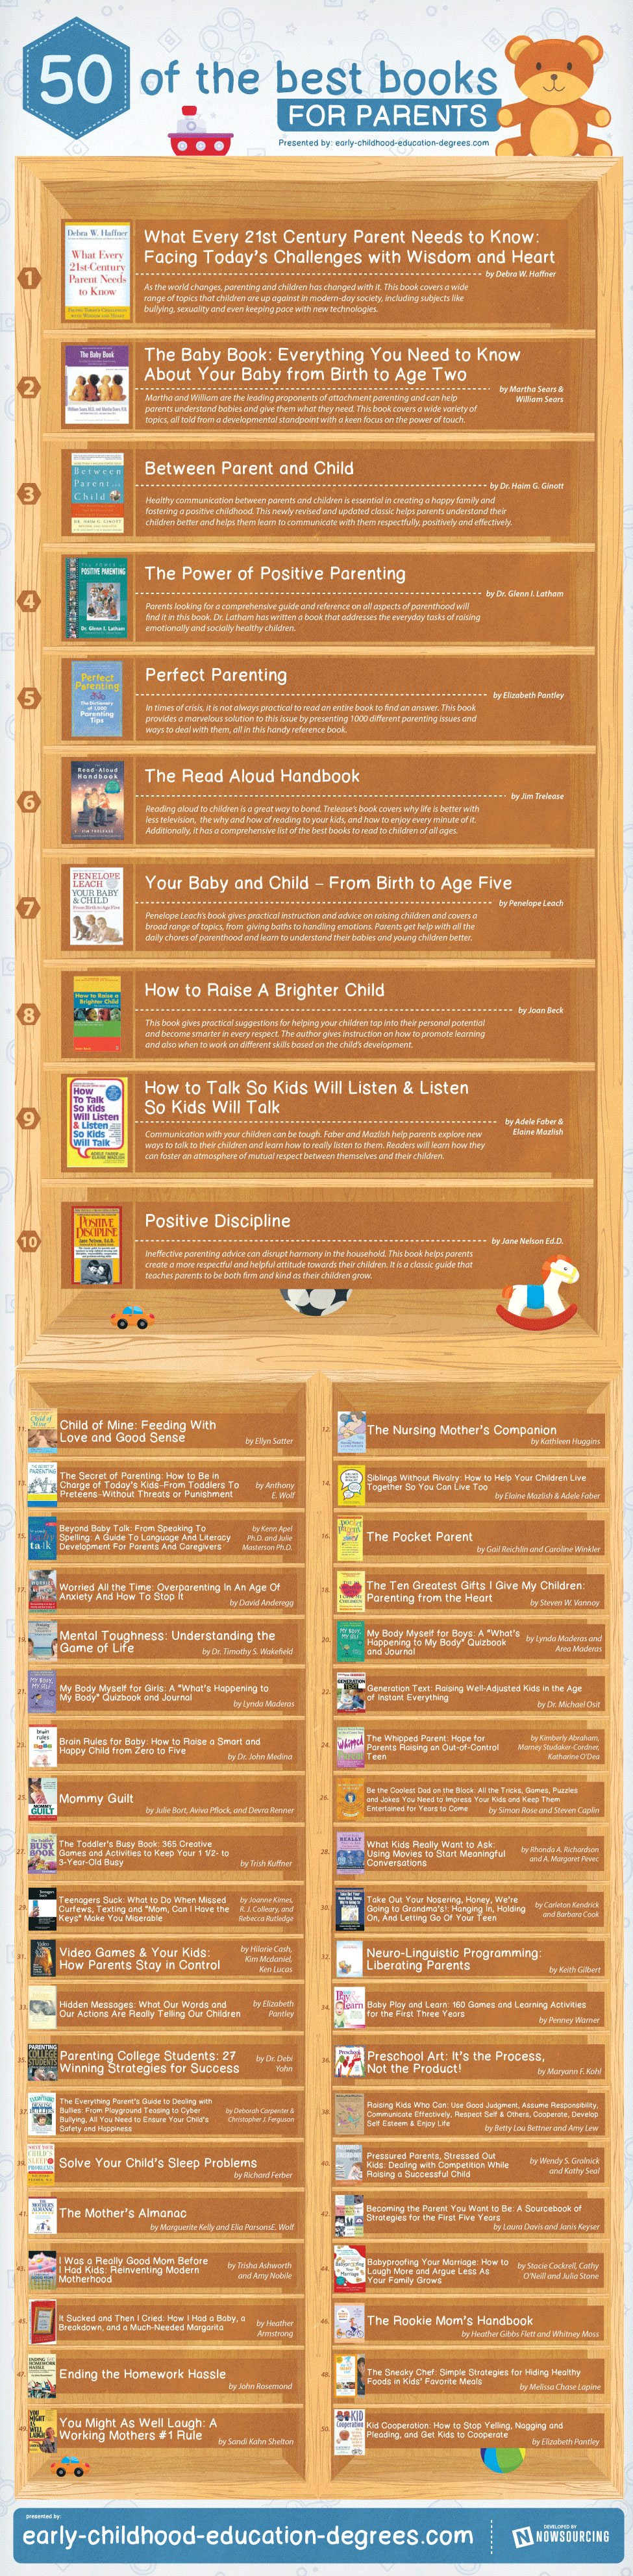 books for parents 50 Of The Best Books For Parents [Infographic]